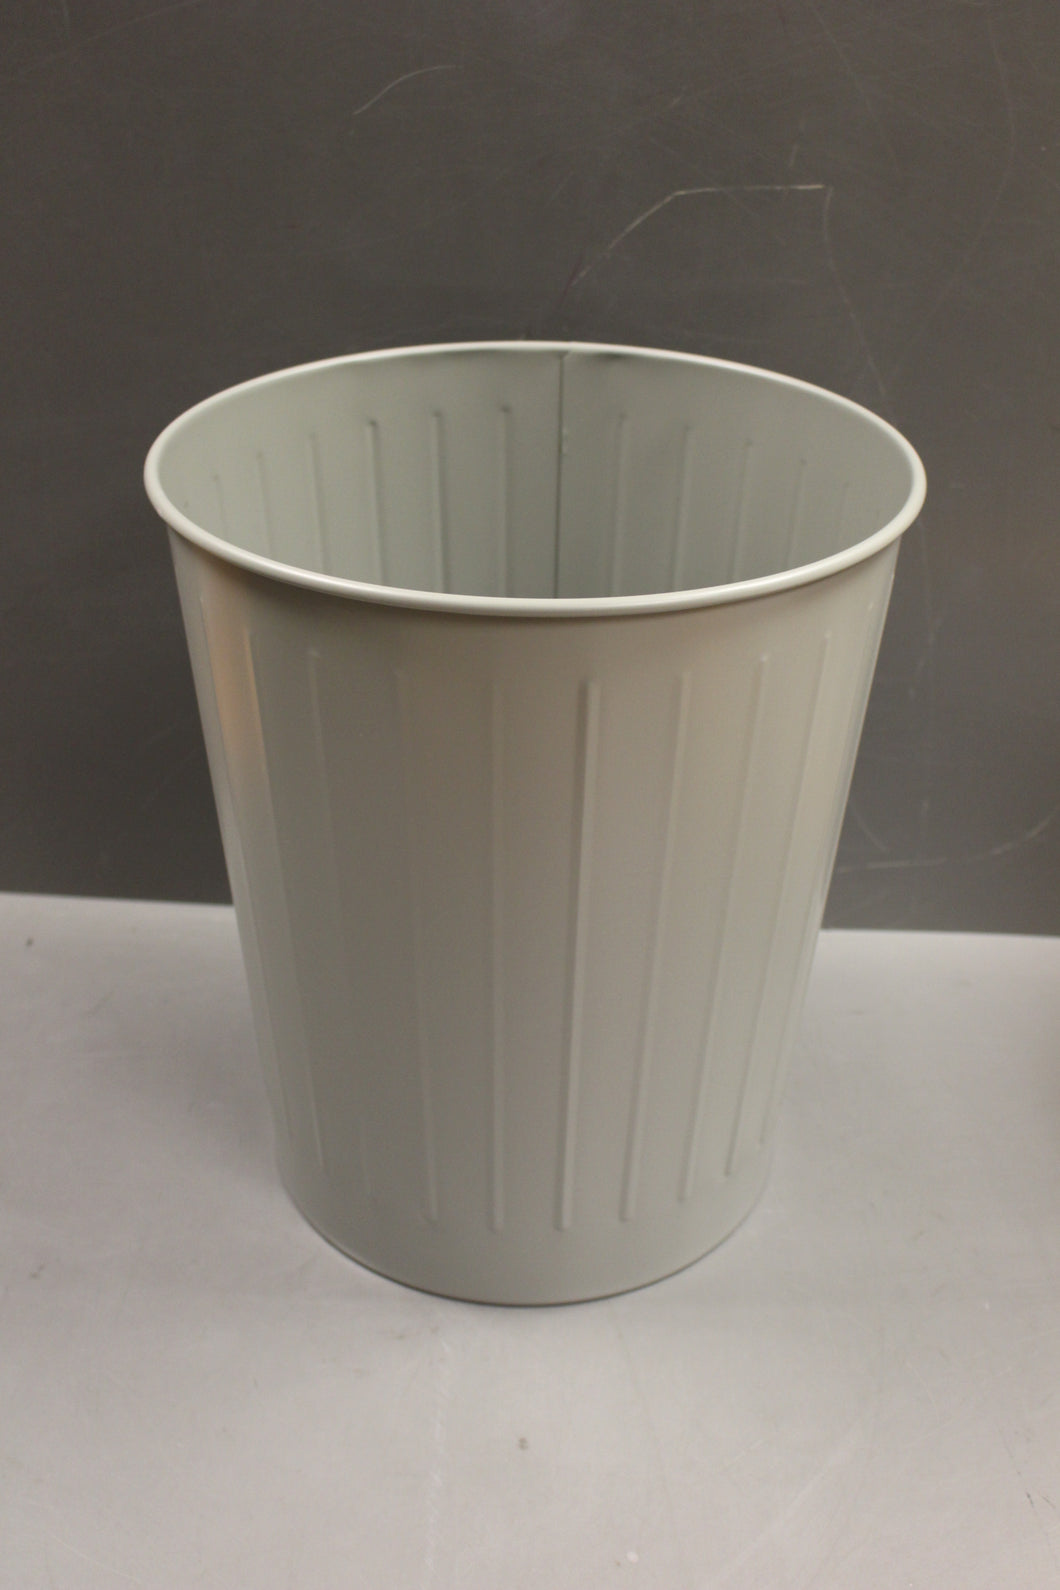 MBA Gray Office Waste Basket / Trash Can, 7520-00-281-5911, New